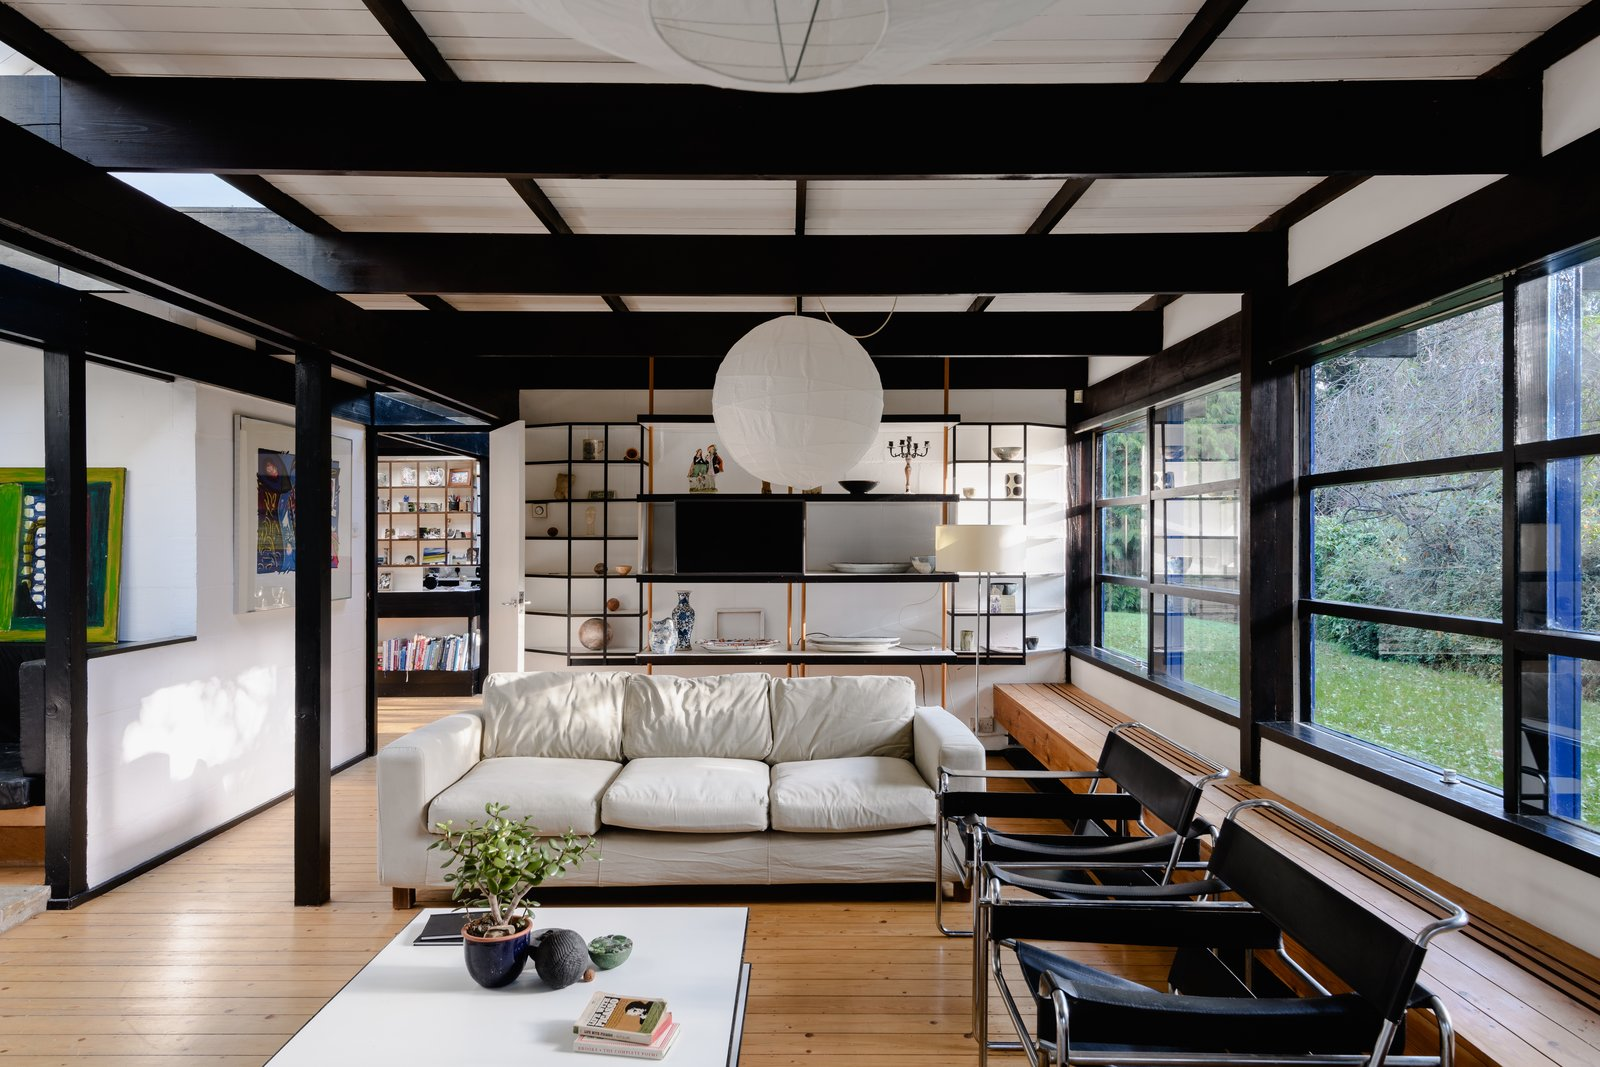 The gallery space also opens into the main living area, where wall-to-wall windows overlook the secluded yard and drench the space in natural light. Furness utilized the post-and-beam design to divide spaces in simple and elegant ways.